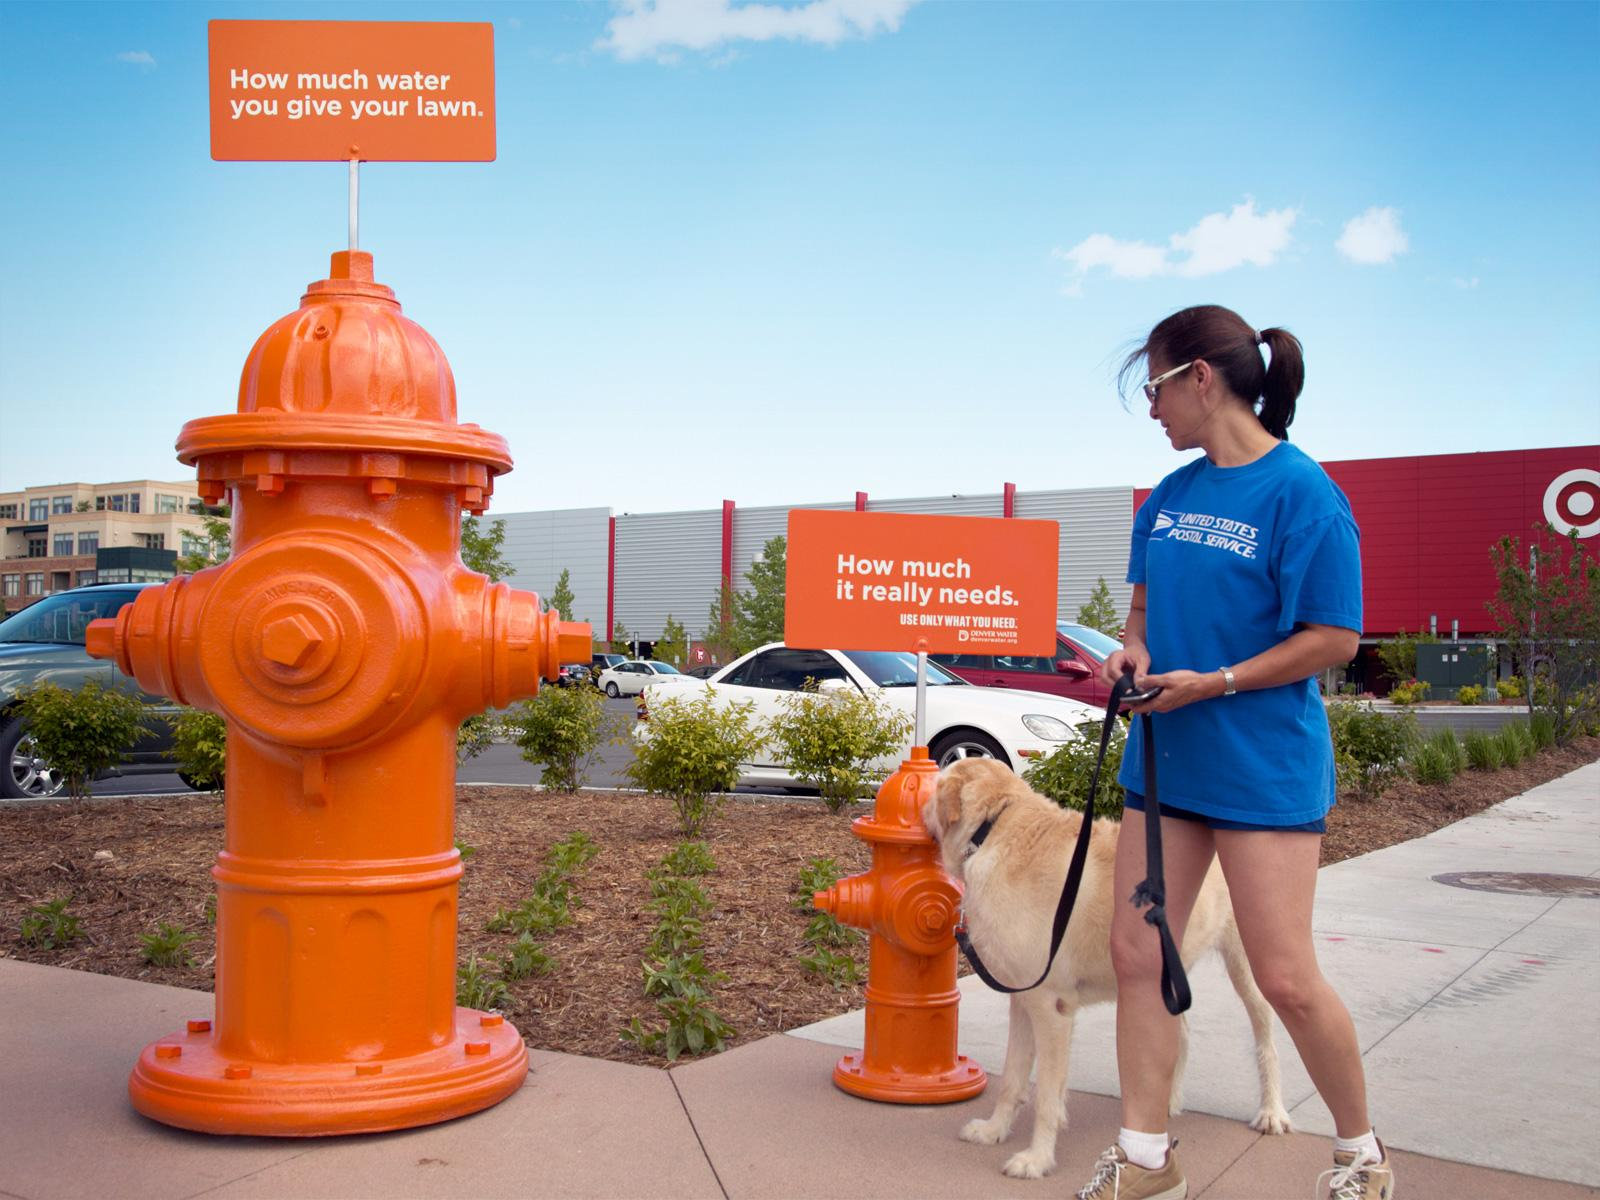 Denver Water Ambient Ad -  Water hydrants